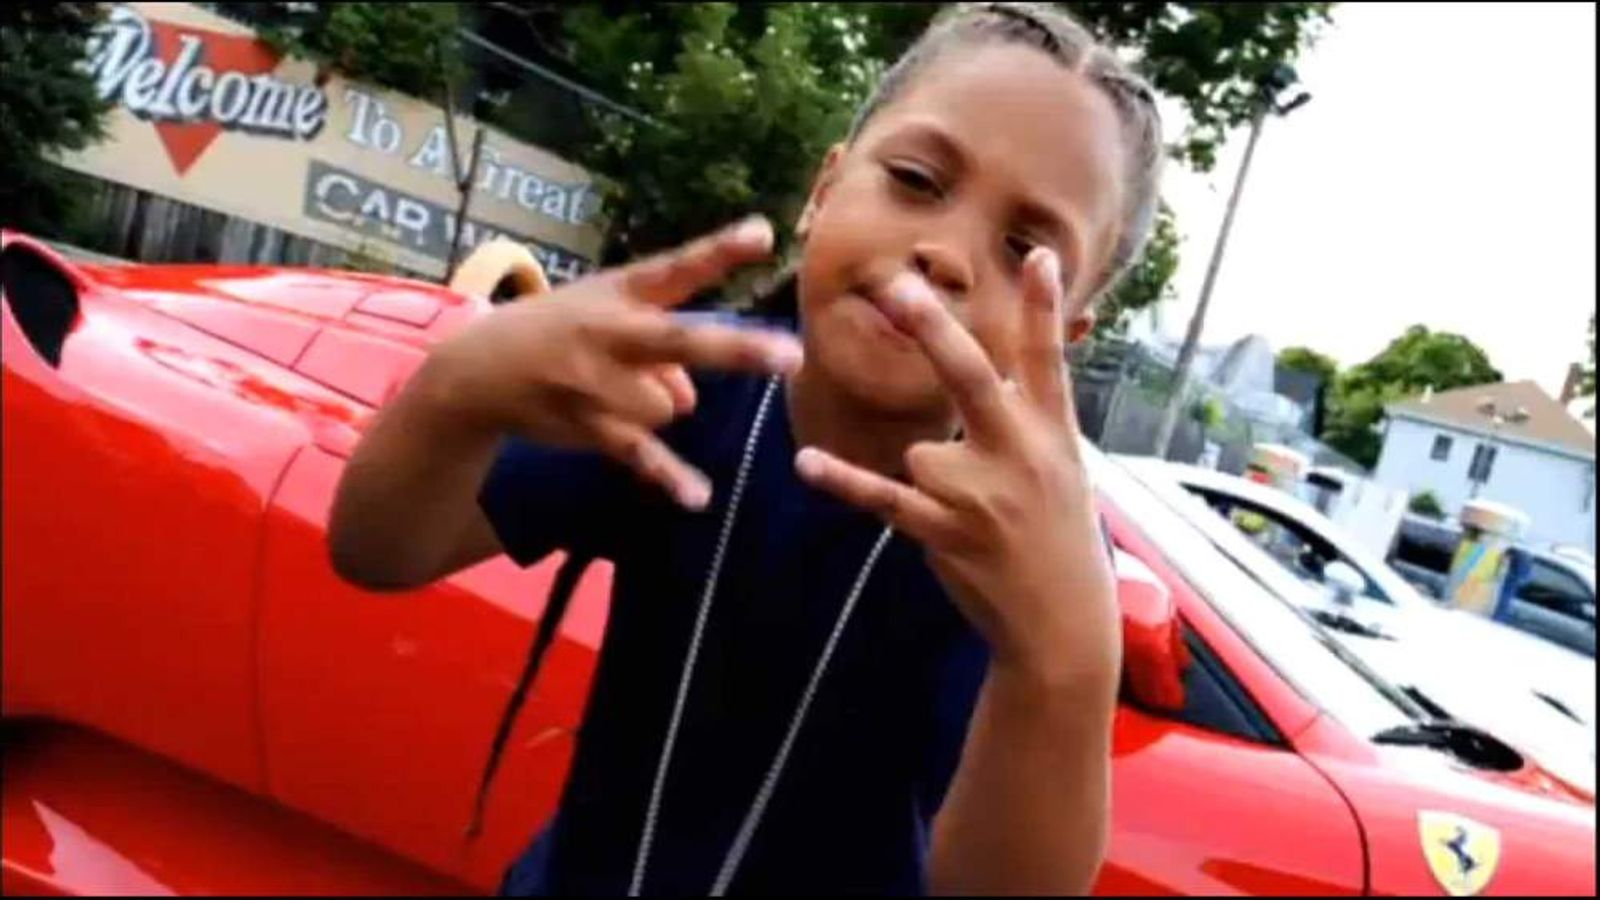 9-year-old rapper Lil Poopy